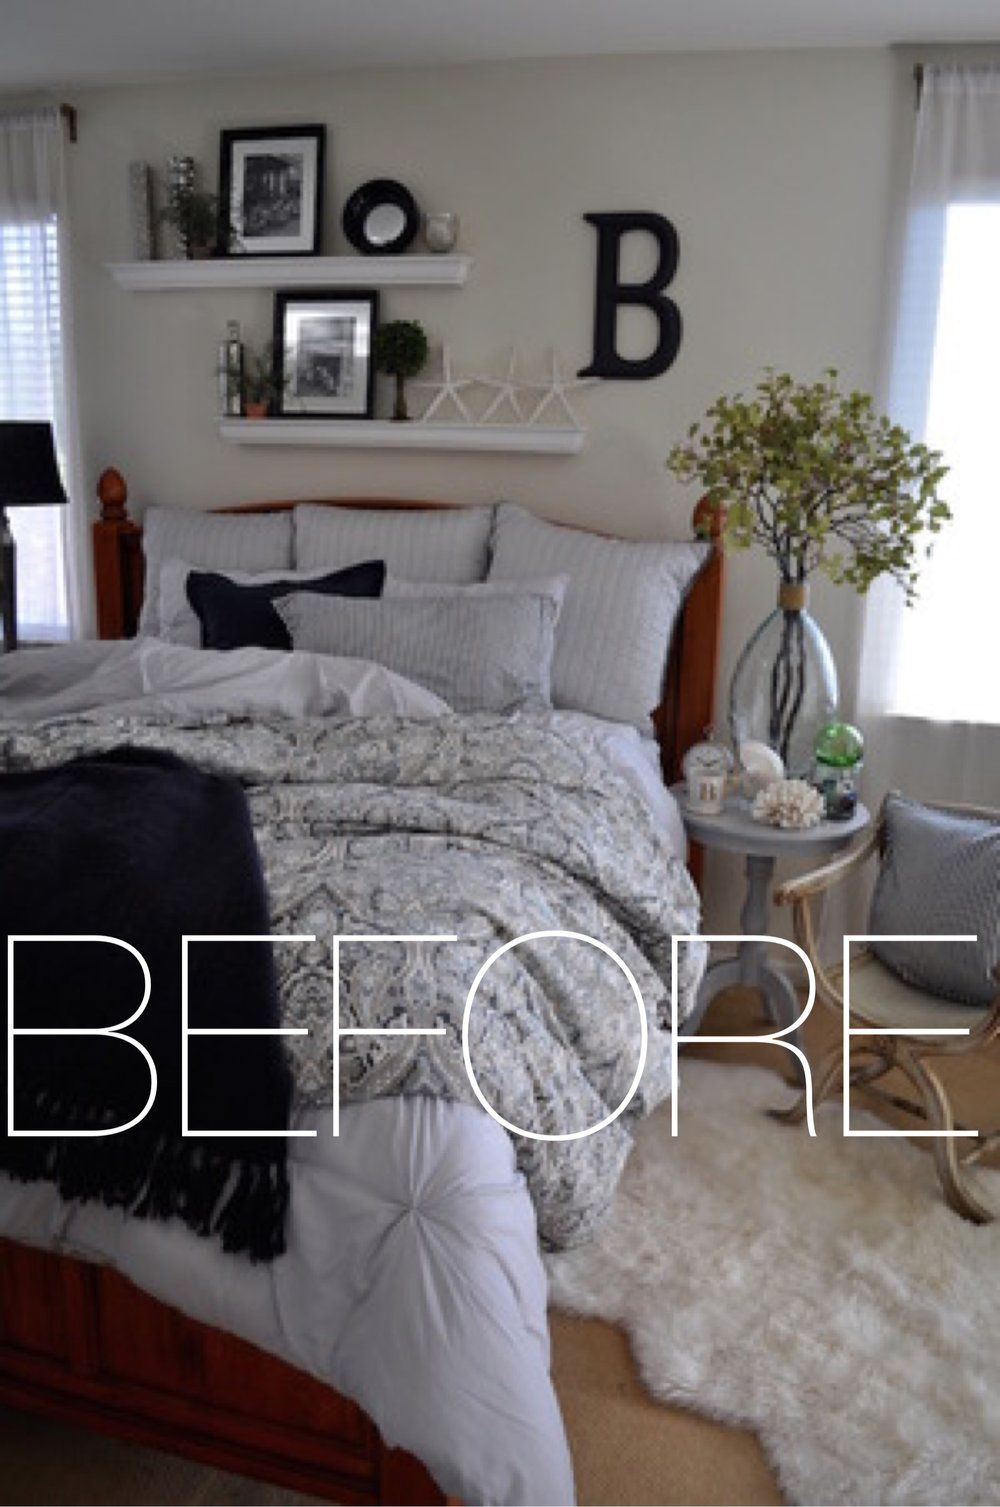 Decoration ideas for bedroom jul  bedroom decorating ideas before and after  bedrooms master